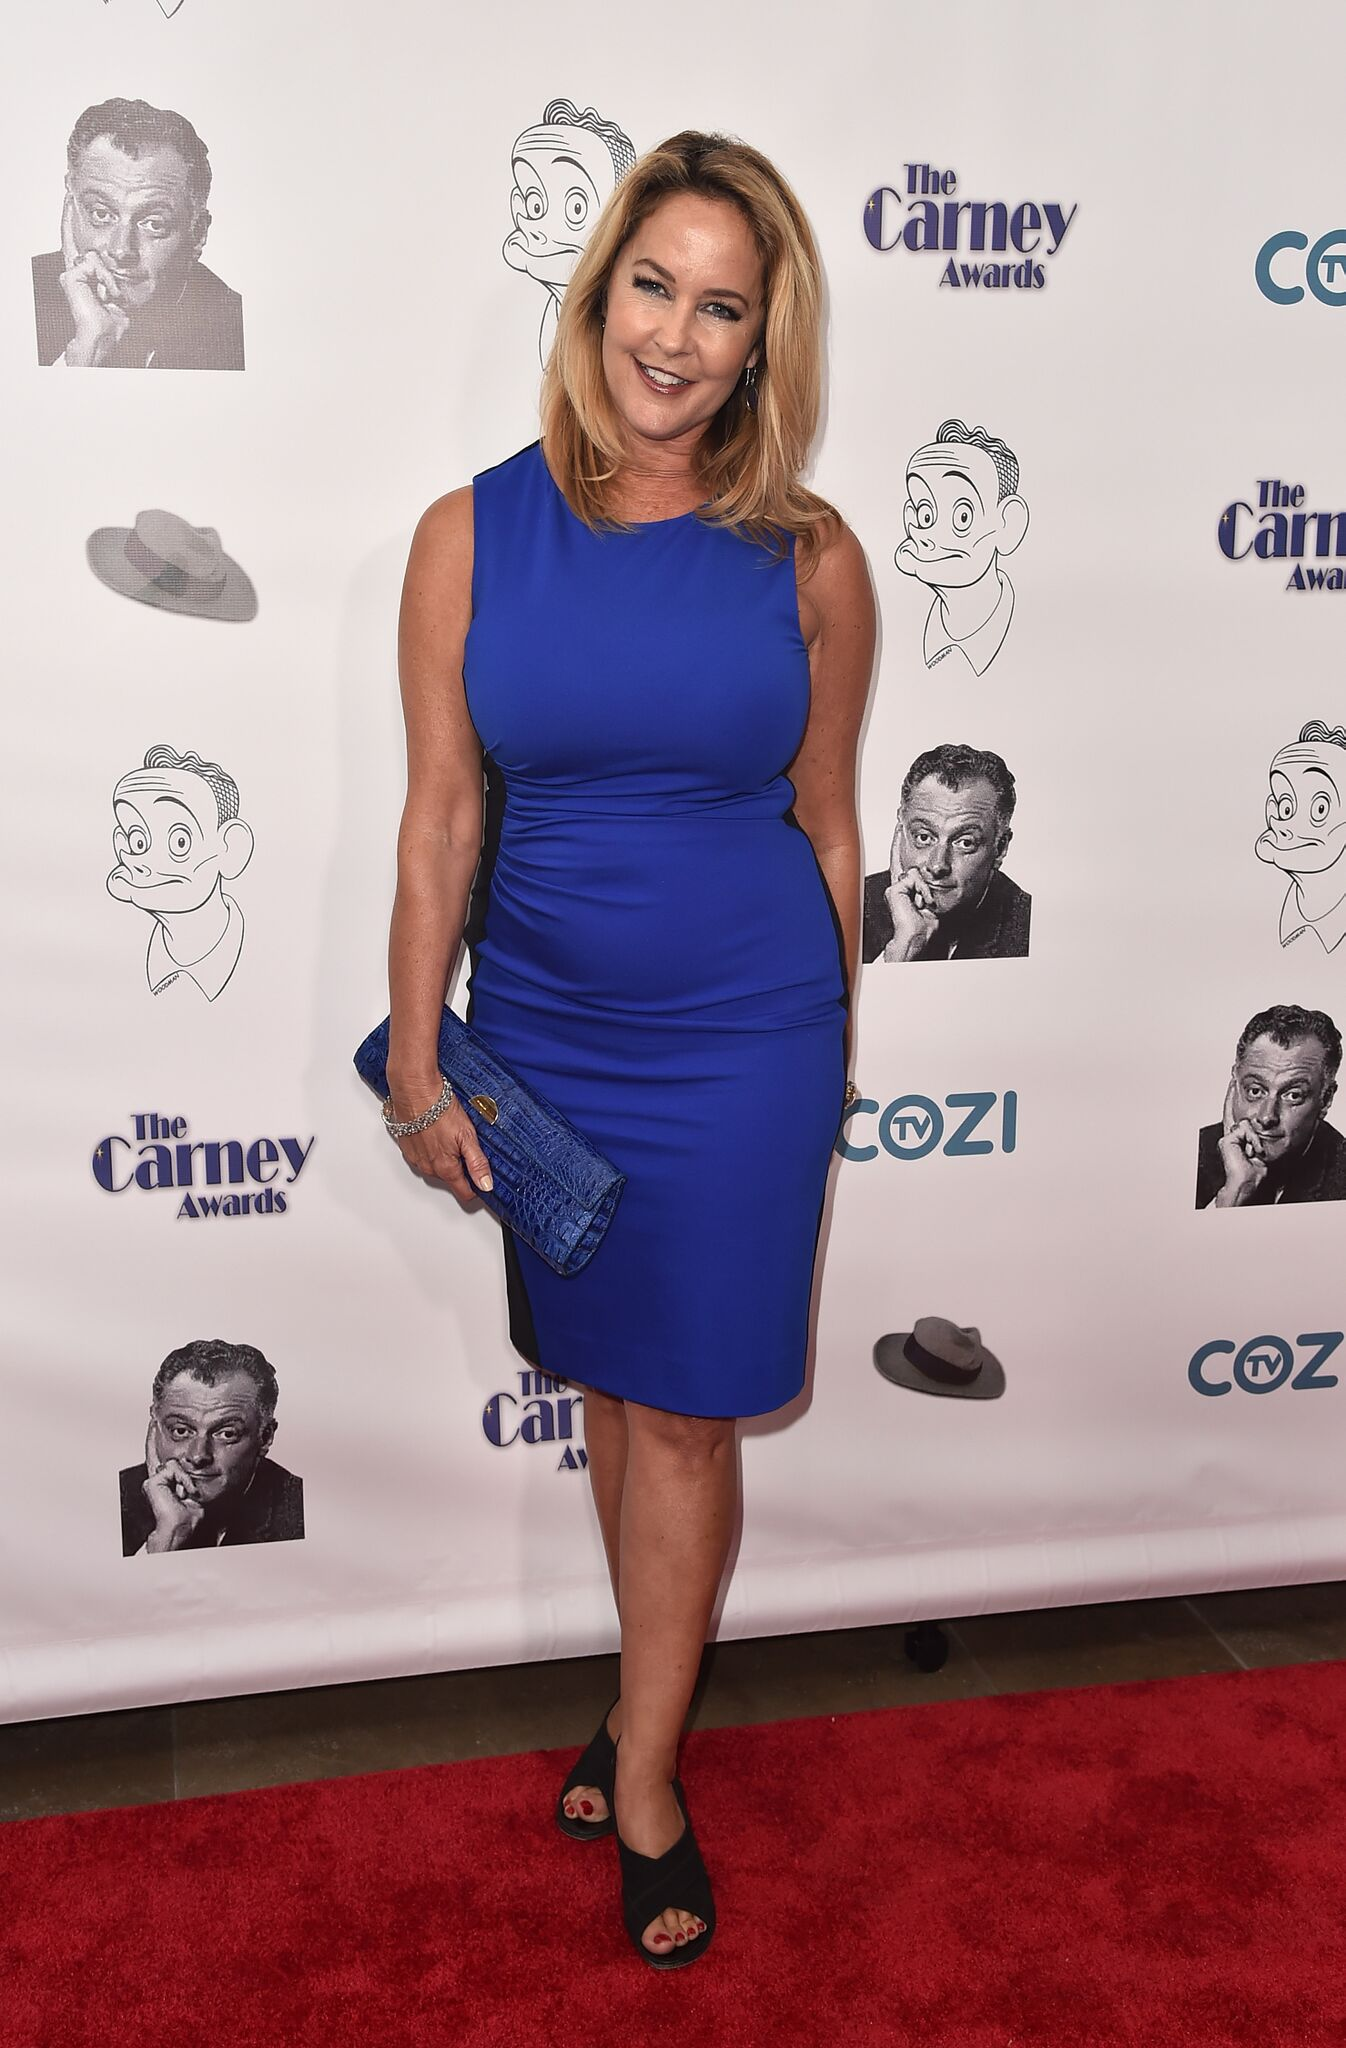 Erin Murphy attends the 3rd Annual Carney Awards | Getty Images/ Global Images Ukraine